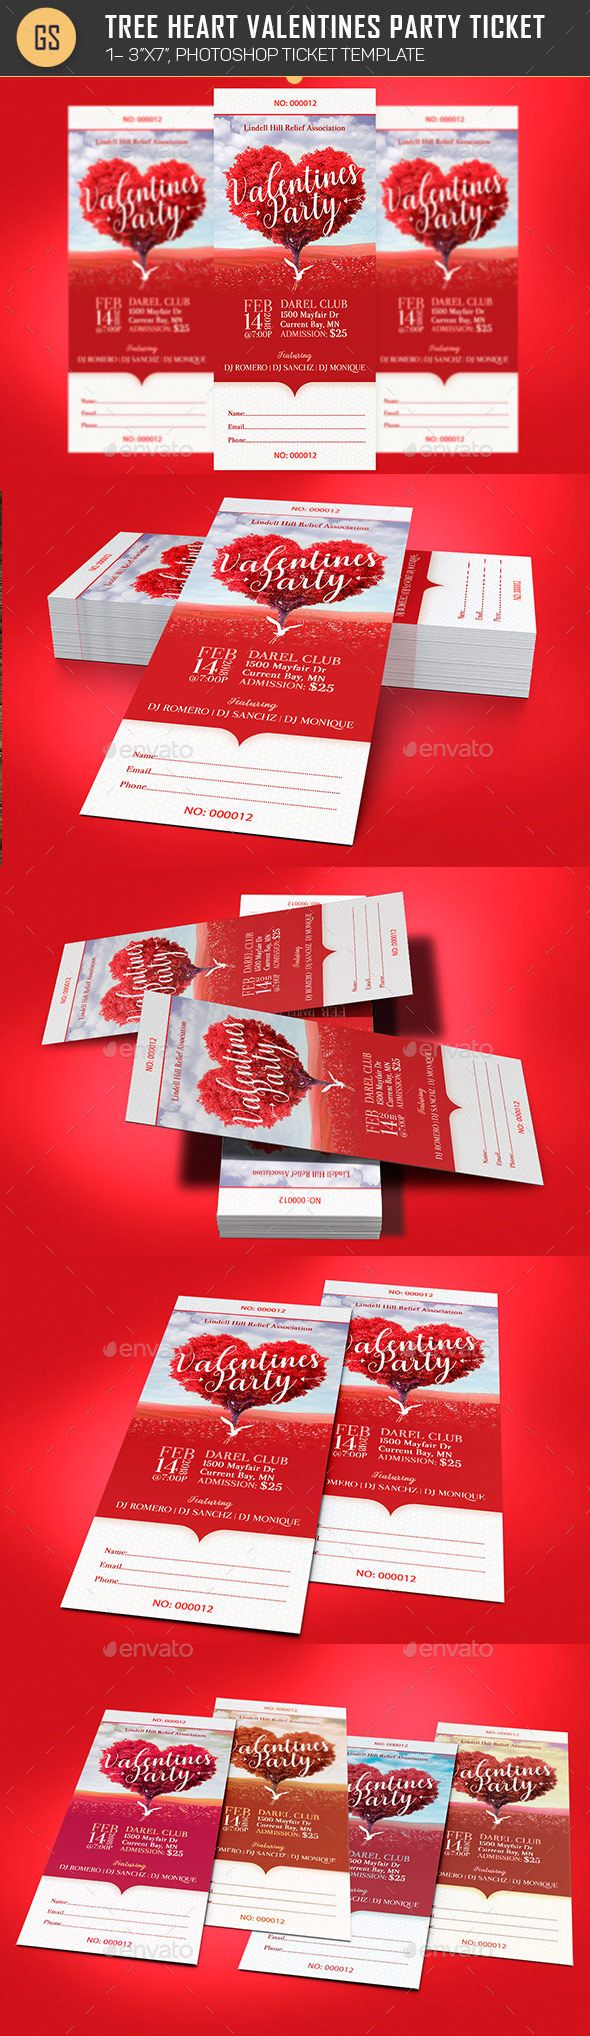 Tree Heart Valentines Party Ticket Template - Miscellaneous Print Templates